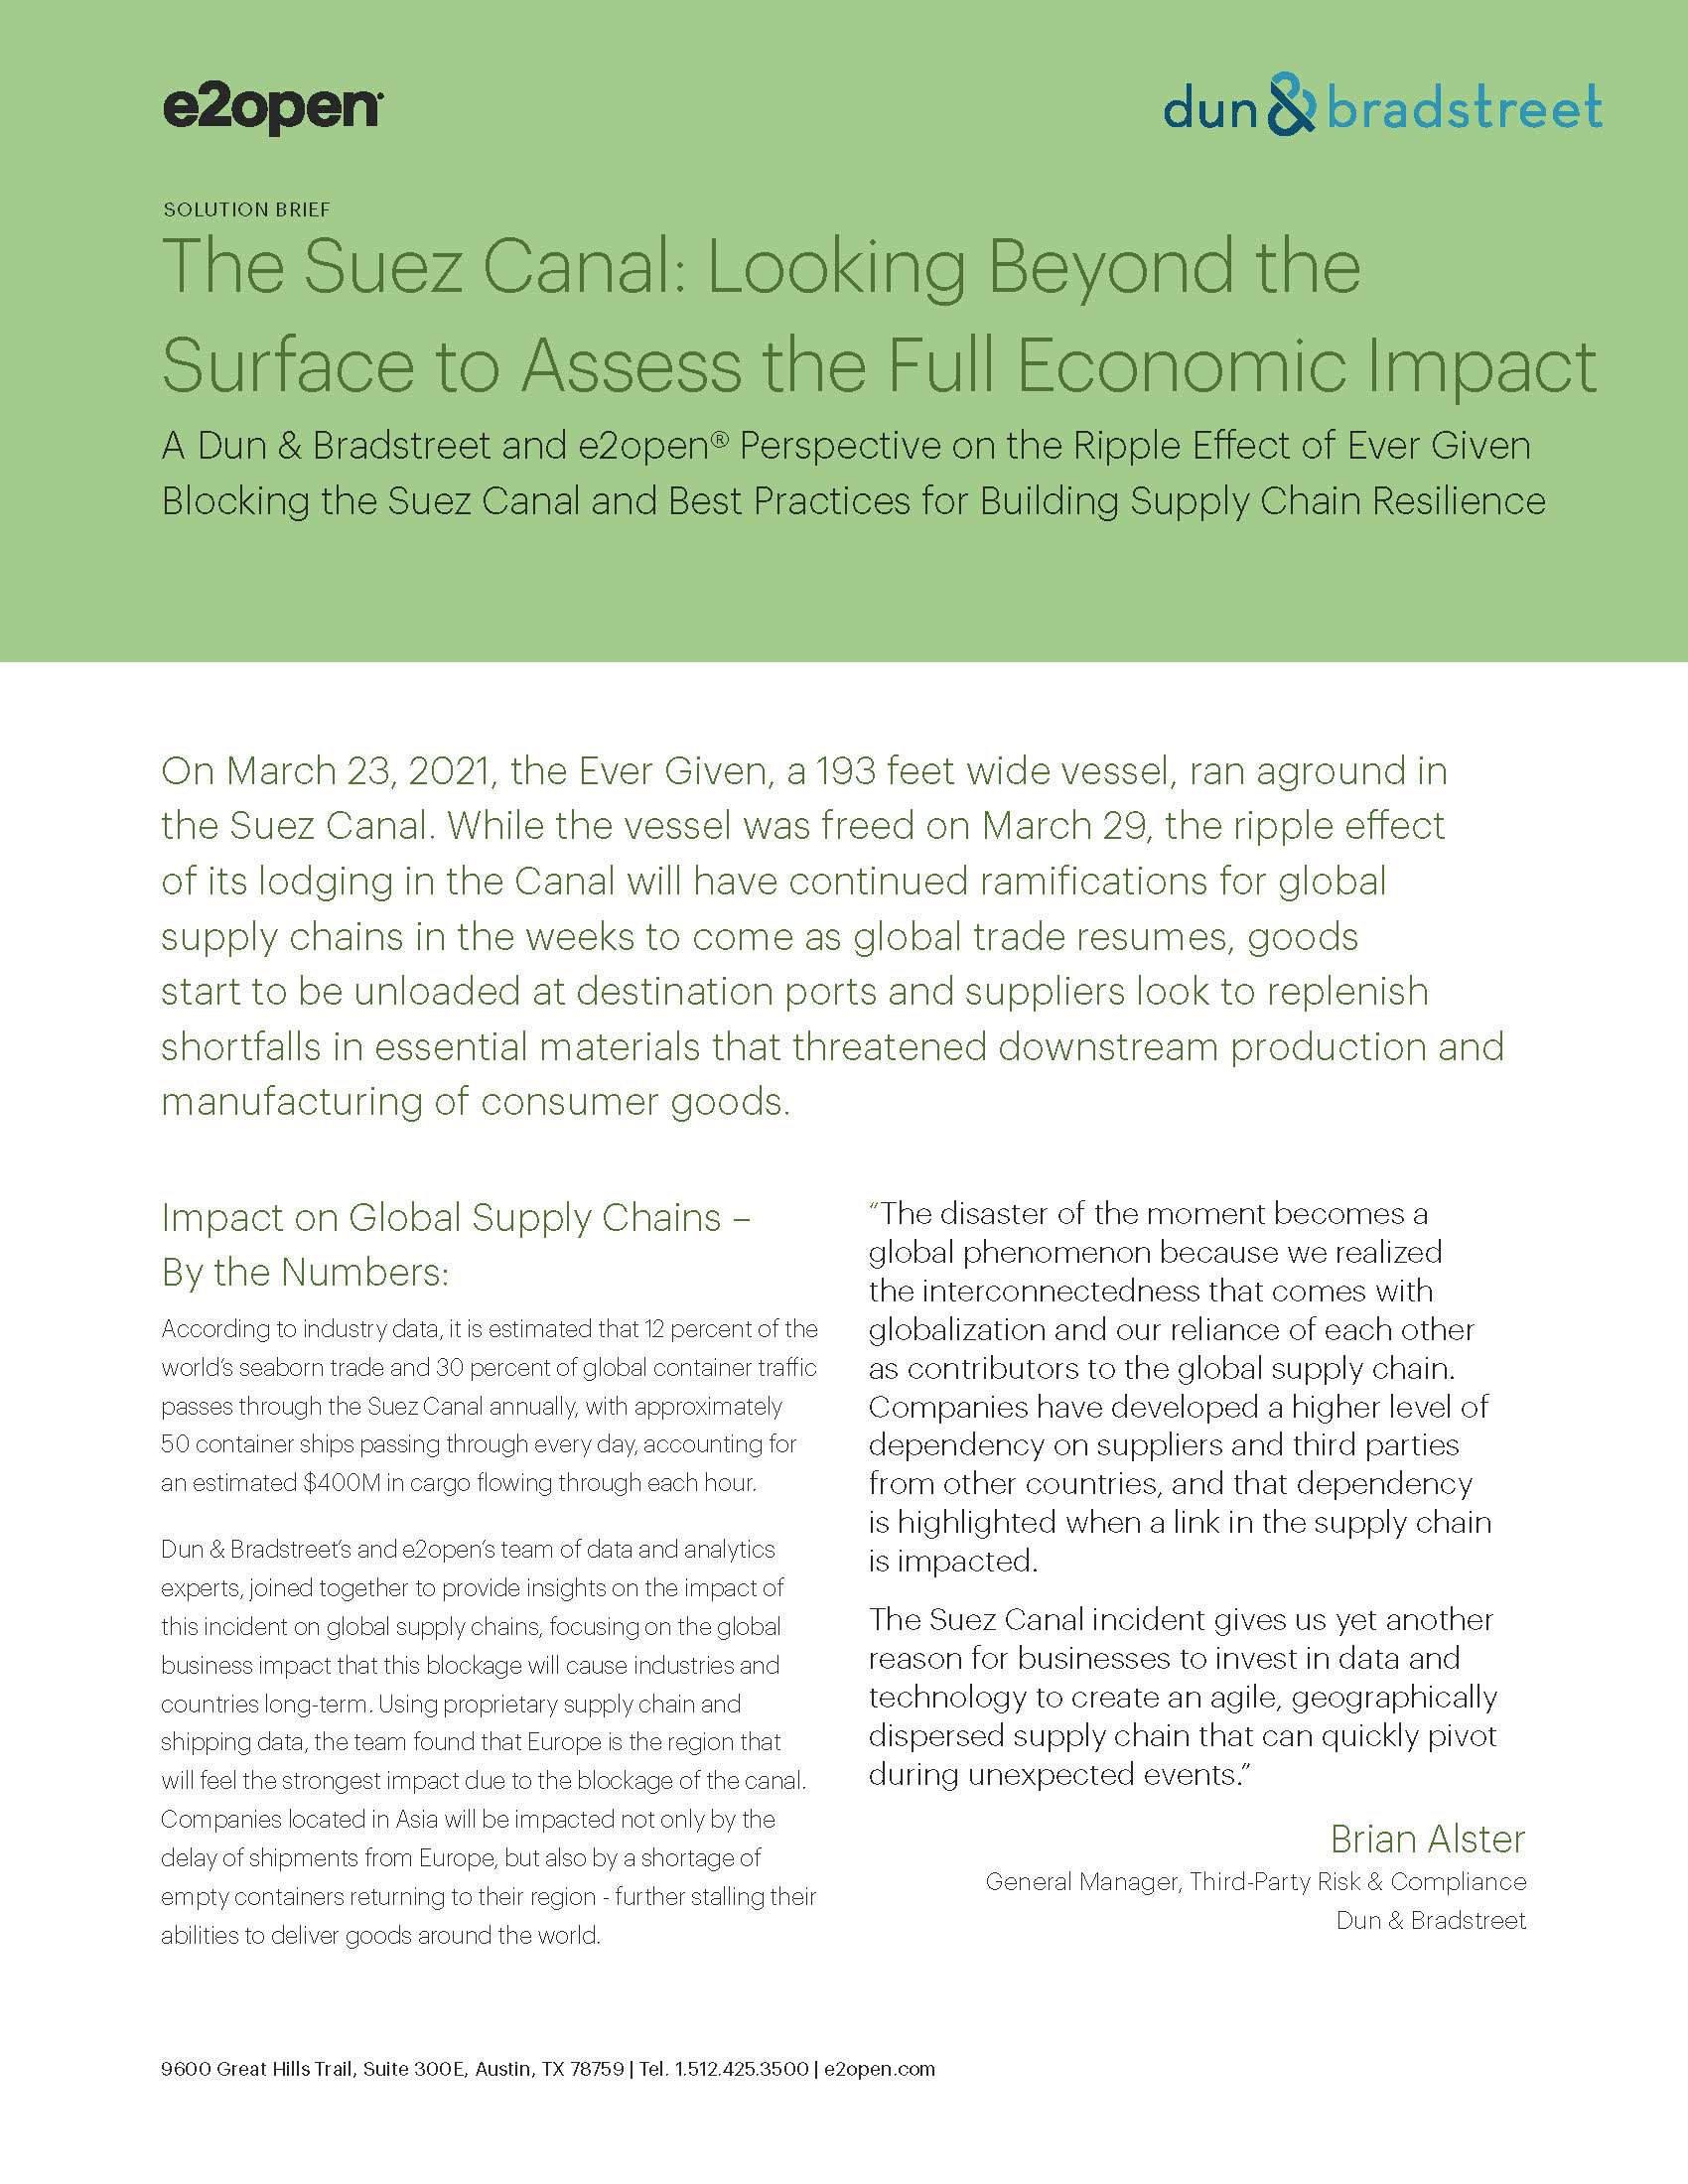 The Suez Canal: Looking Beyond the Surface to Assess the Full Economic Impact